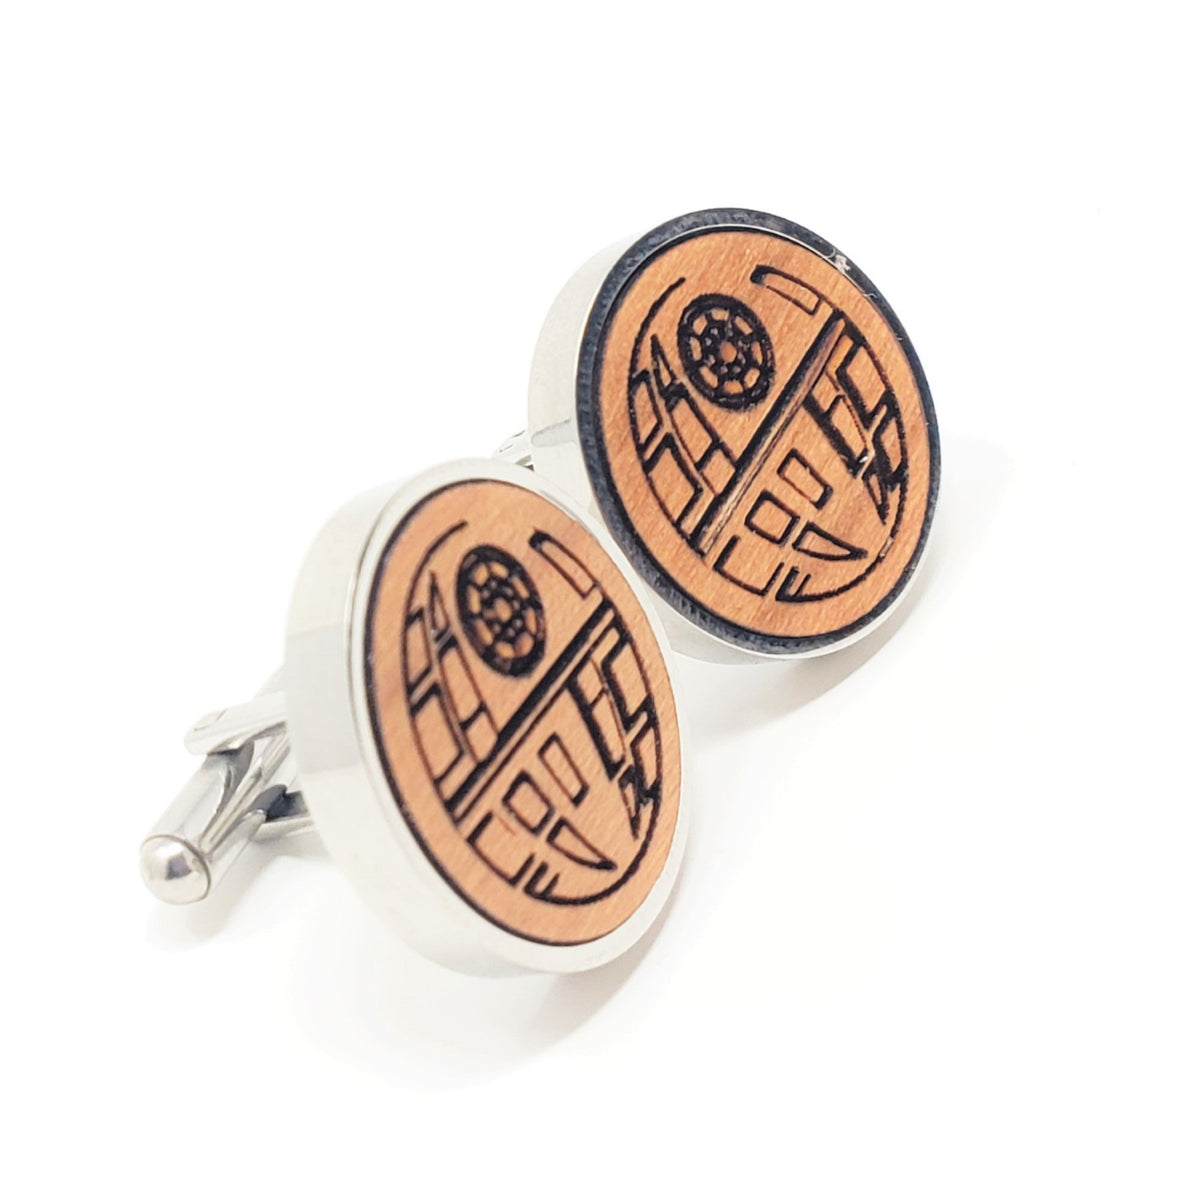 Death Star Stainless and Wood Cufflinks